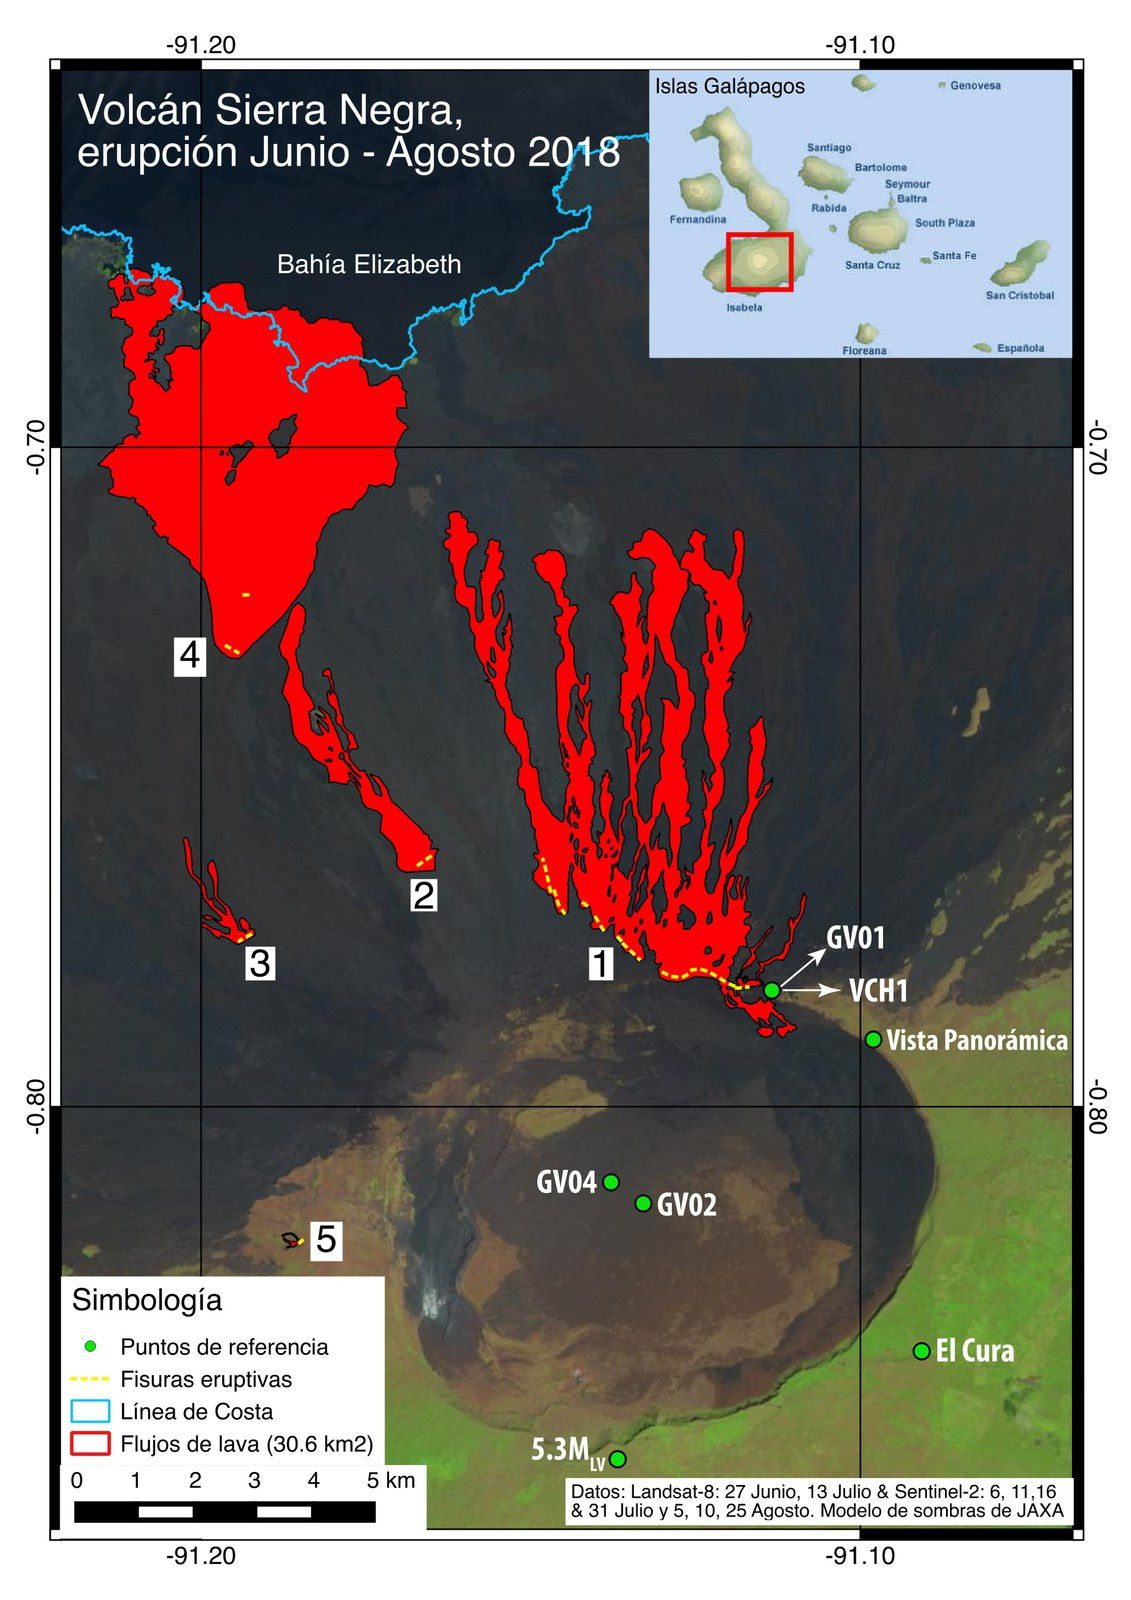 Sierra Negra - eruptive fissures and lava flows between June and August 2018 - Doc. IGEPN